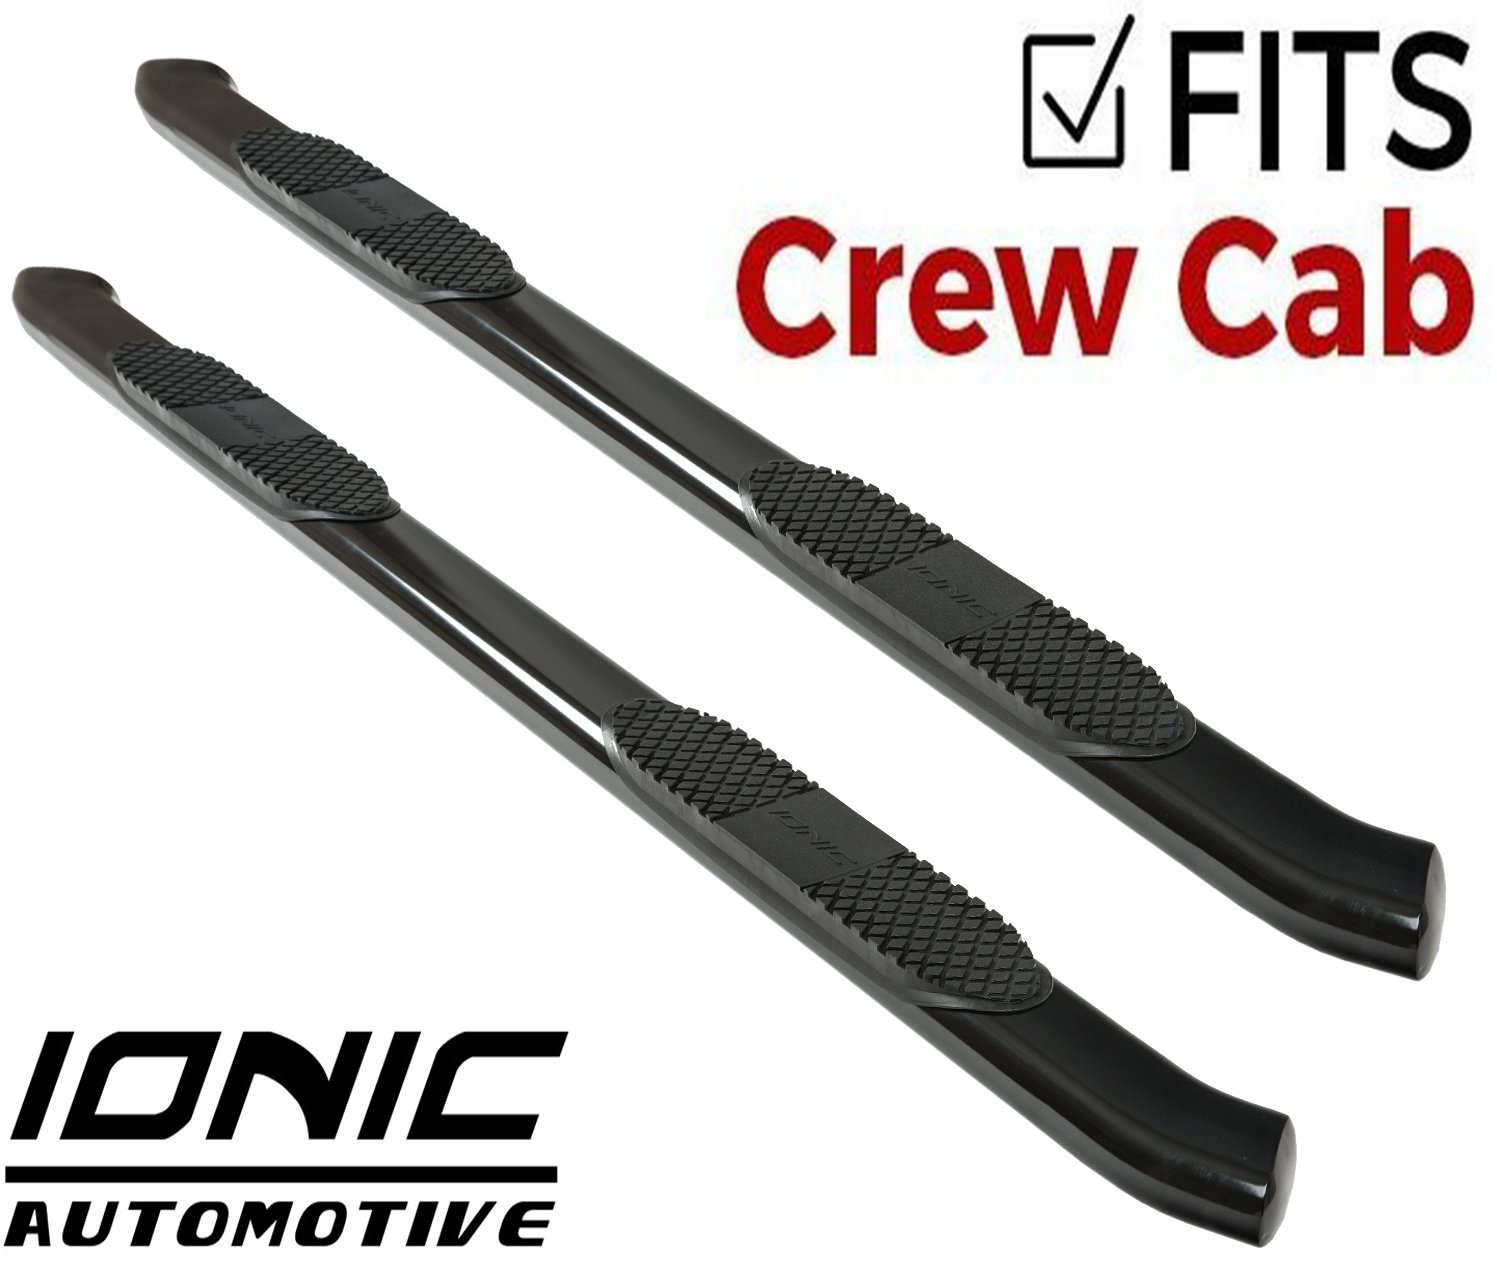 """Ionic 5"""" Black Steel Curved Nerf Bars (fits) 2009-2018 Dodge Ram Crew Cab Only Truck Side Steps (423309BP)"""